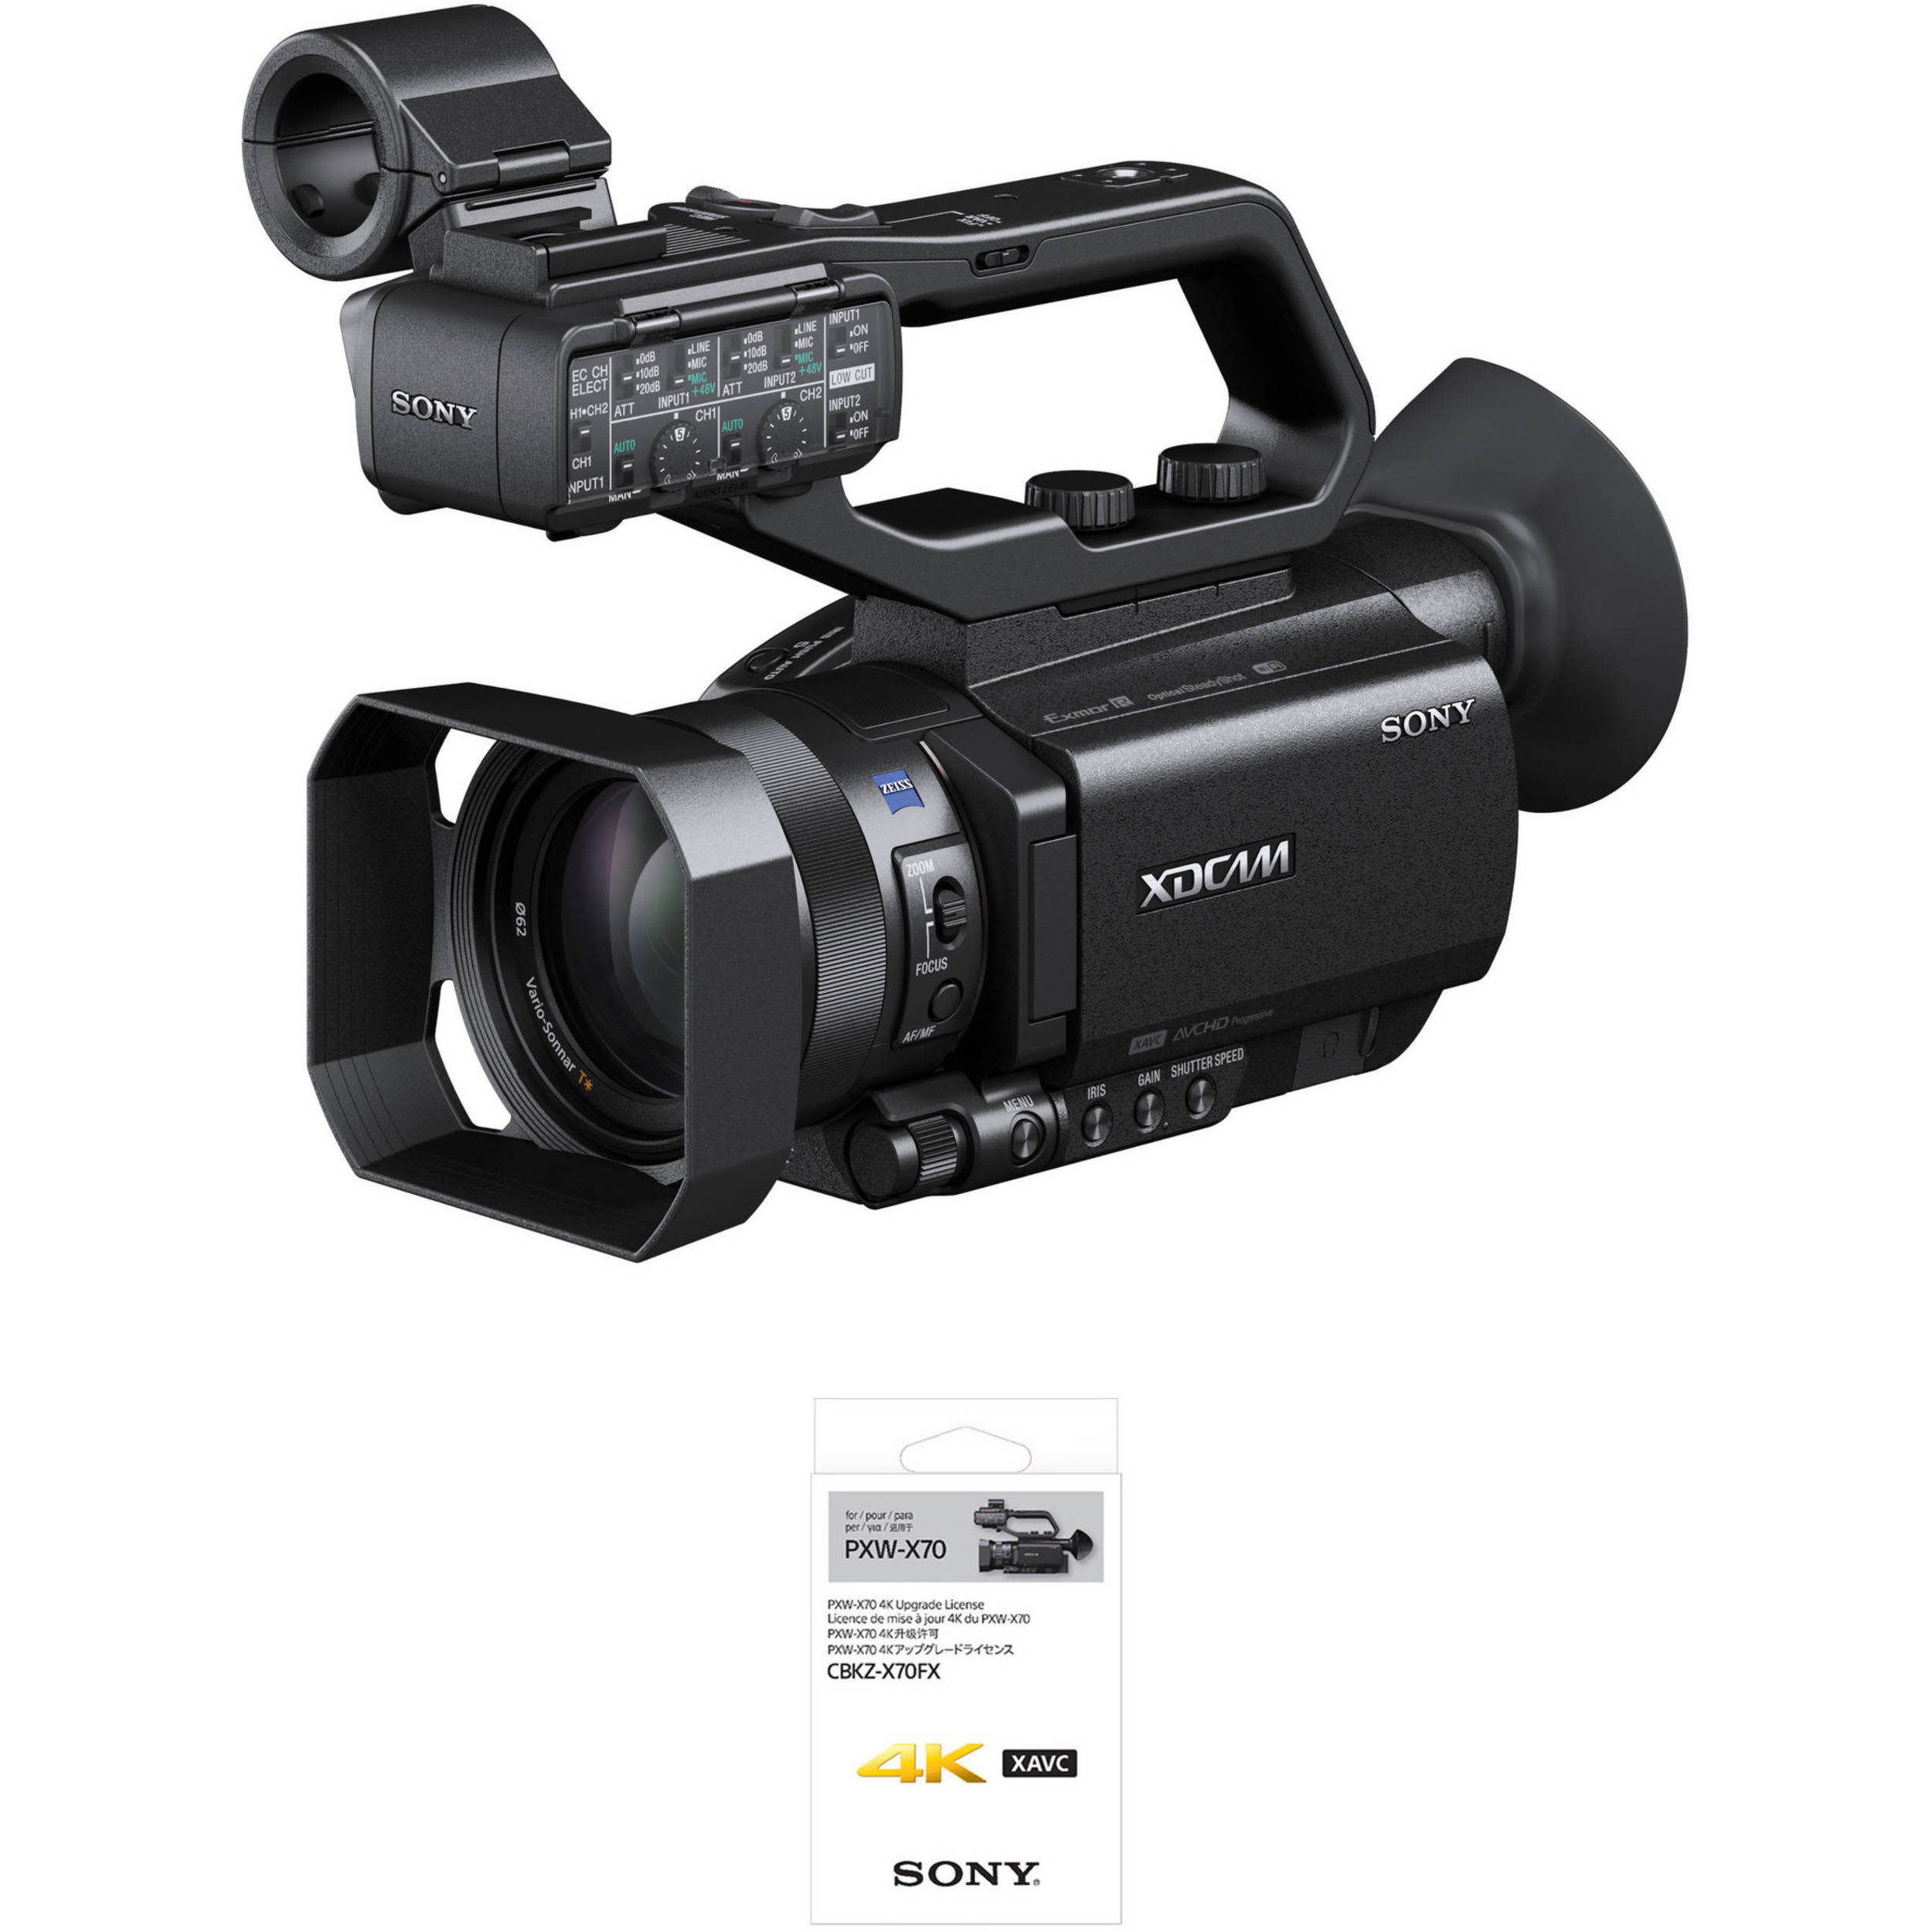 sony video camera 4k. sony pxw-x70 professional xdcam compact camcorder with 4k upgrade license video camera 4k m